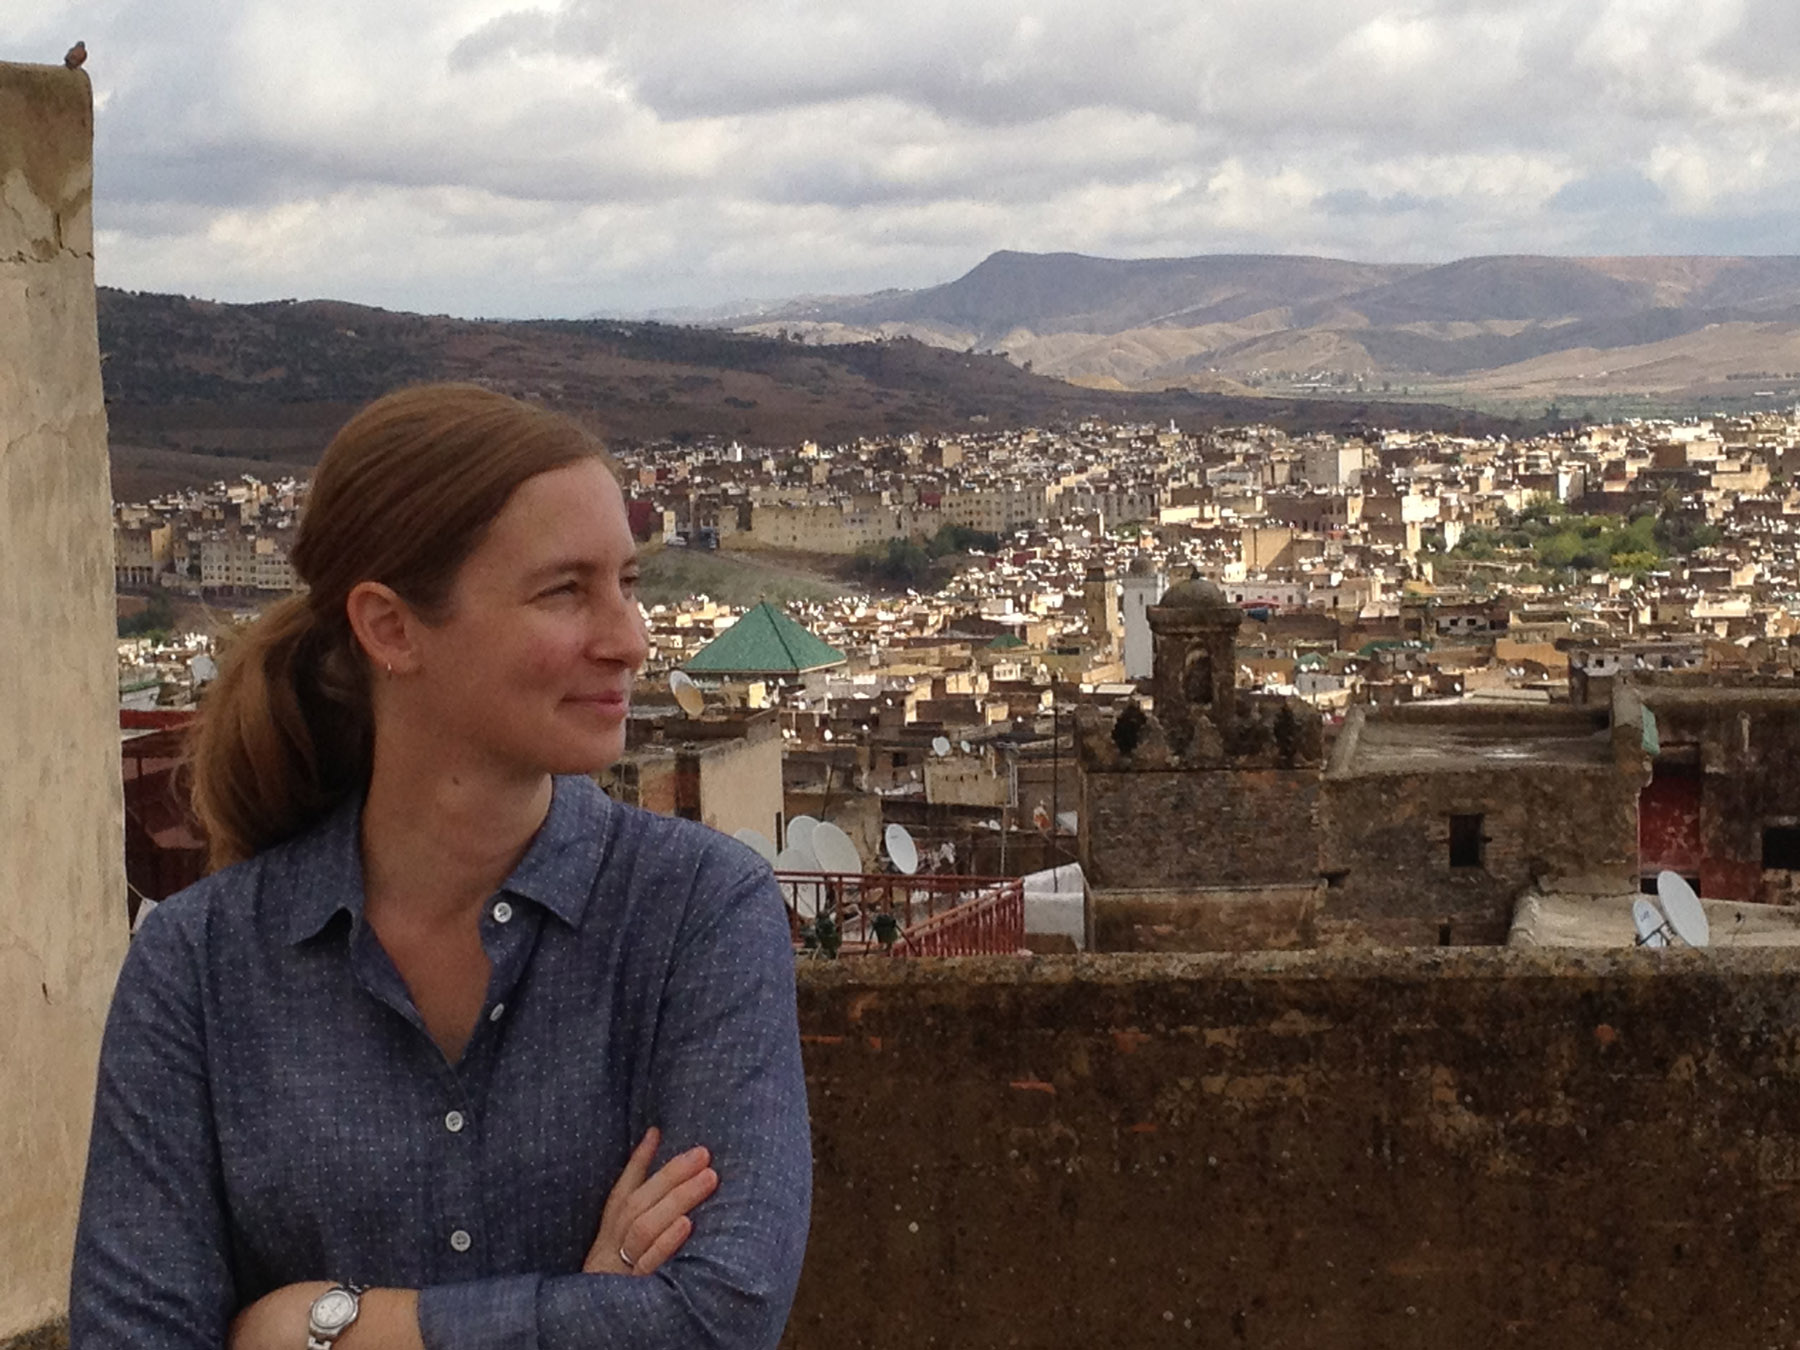 Fulbright grantee Andrea Urbiel Goldner, who teaches in the School of Natural Resources and Environment, on the roof of her house in Fes, Morocco, where she is studying landscape architecture.